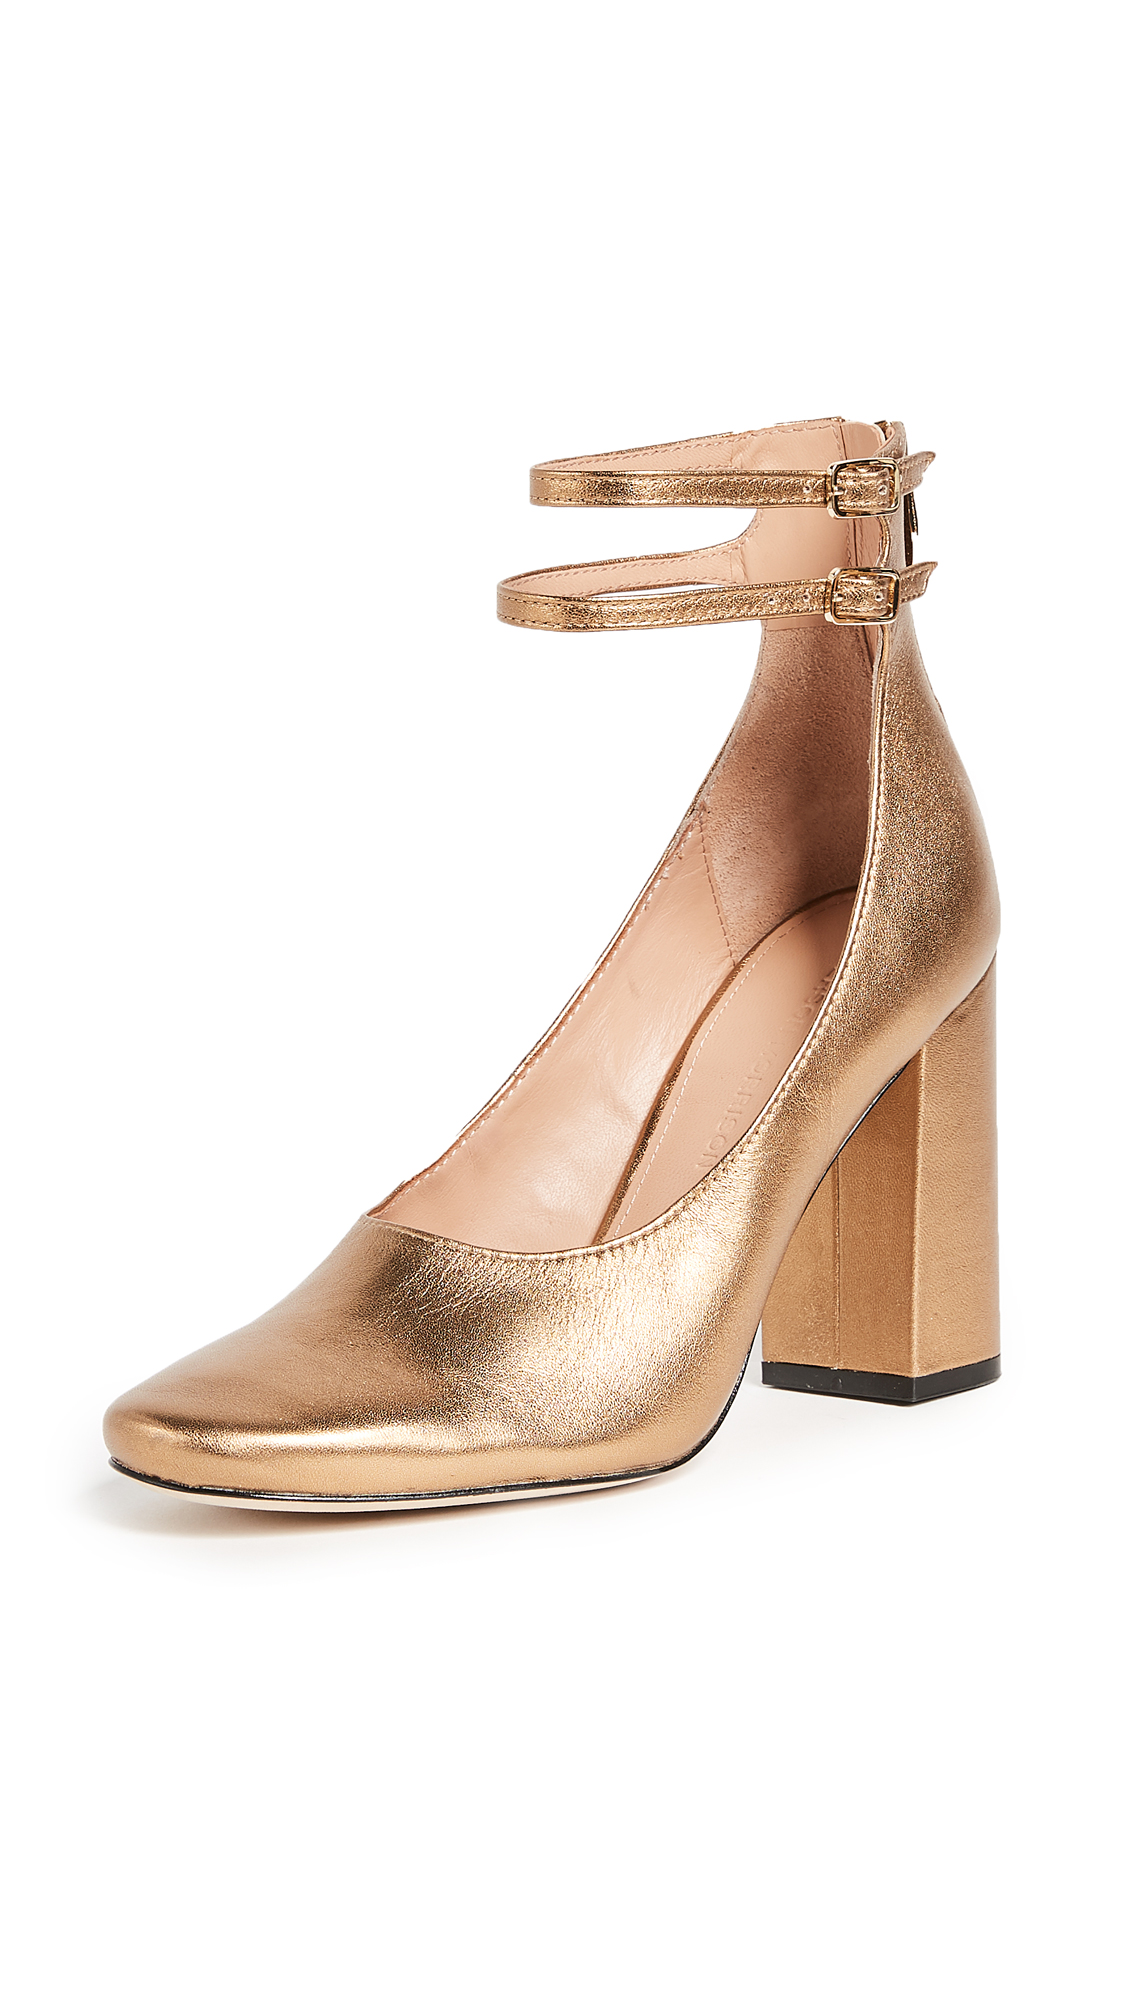 Sigerson Morrison Plum Ankle Strap Pumps - Dark Gold